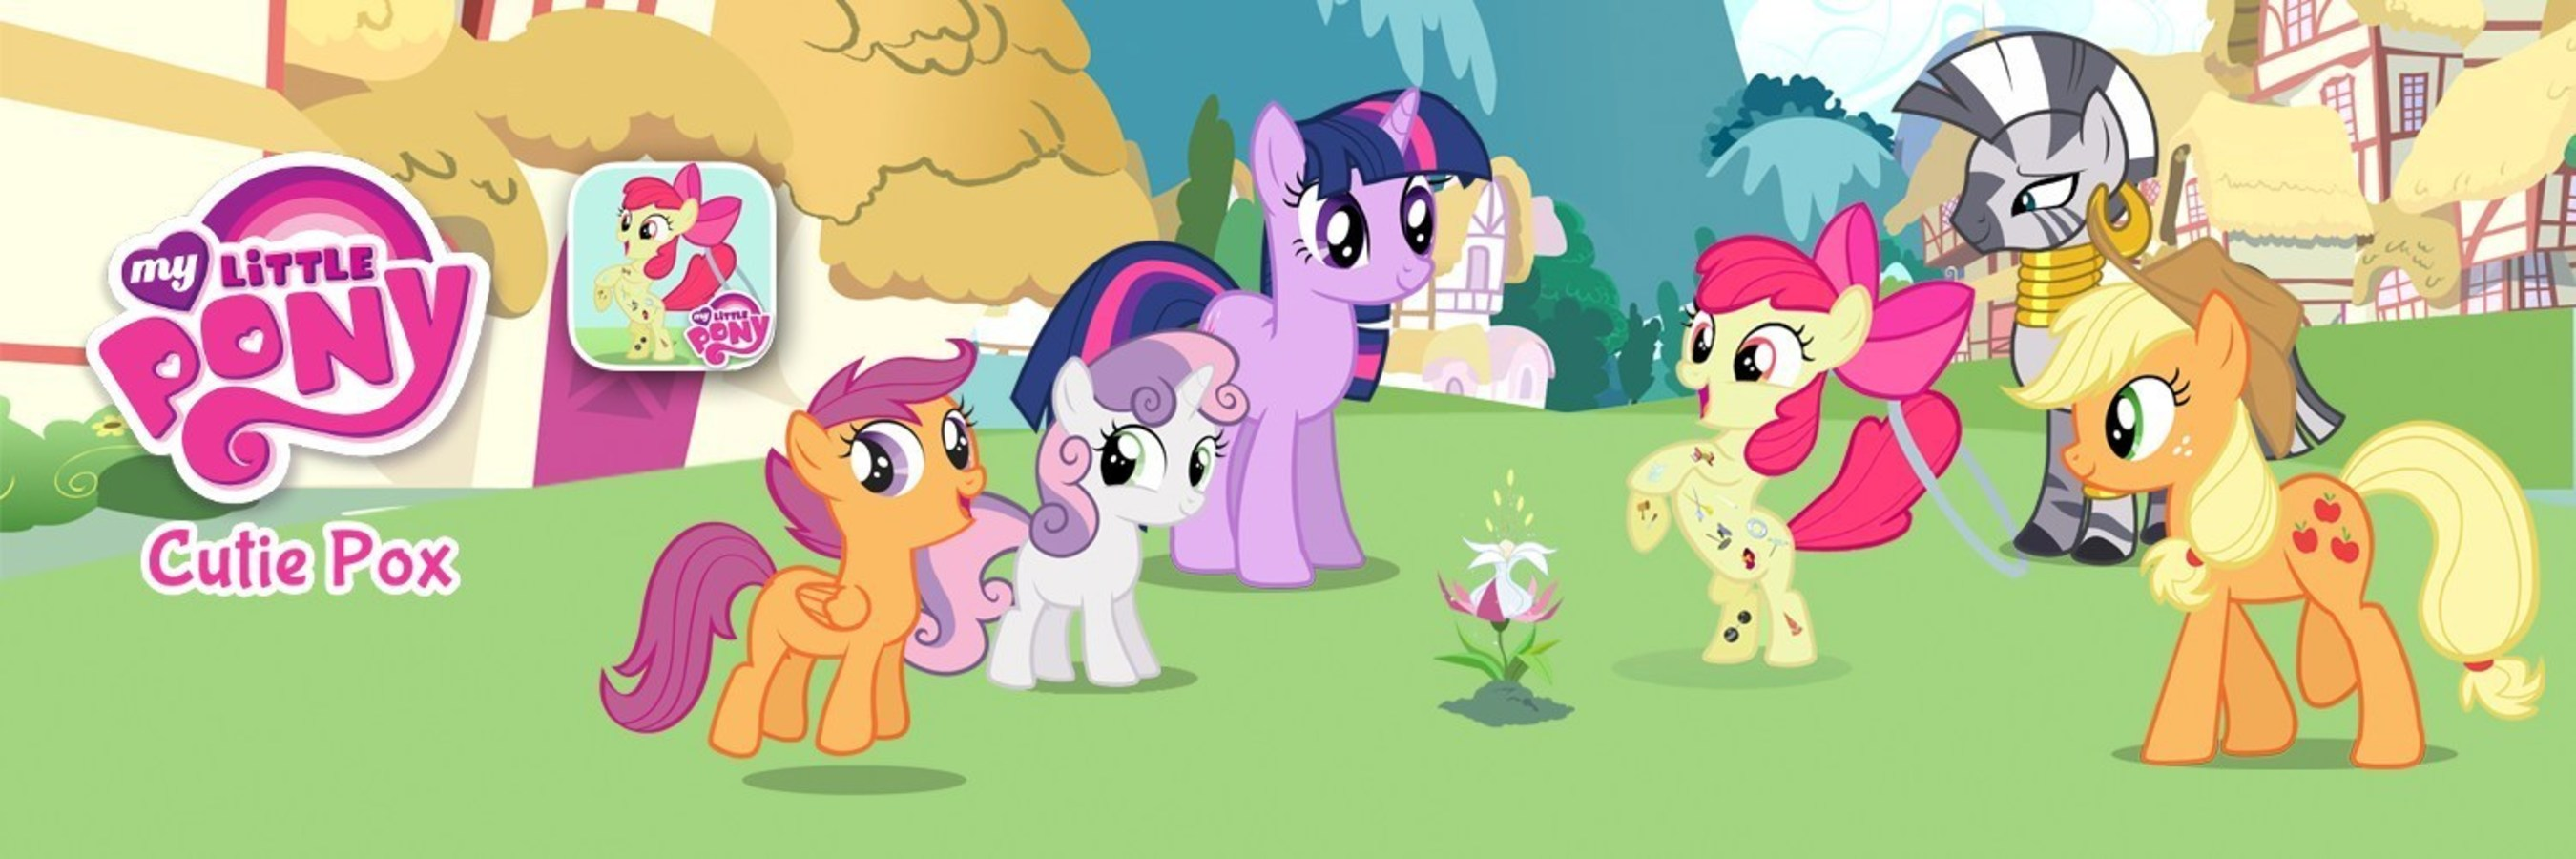 PlayDate Digital's MY LITTLE PONY: CUTIE POX Storybook App for iPhone, iPad and iPod touch,